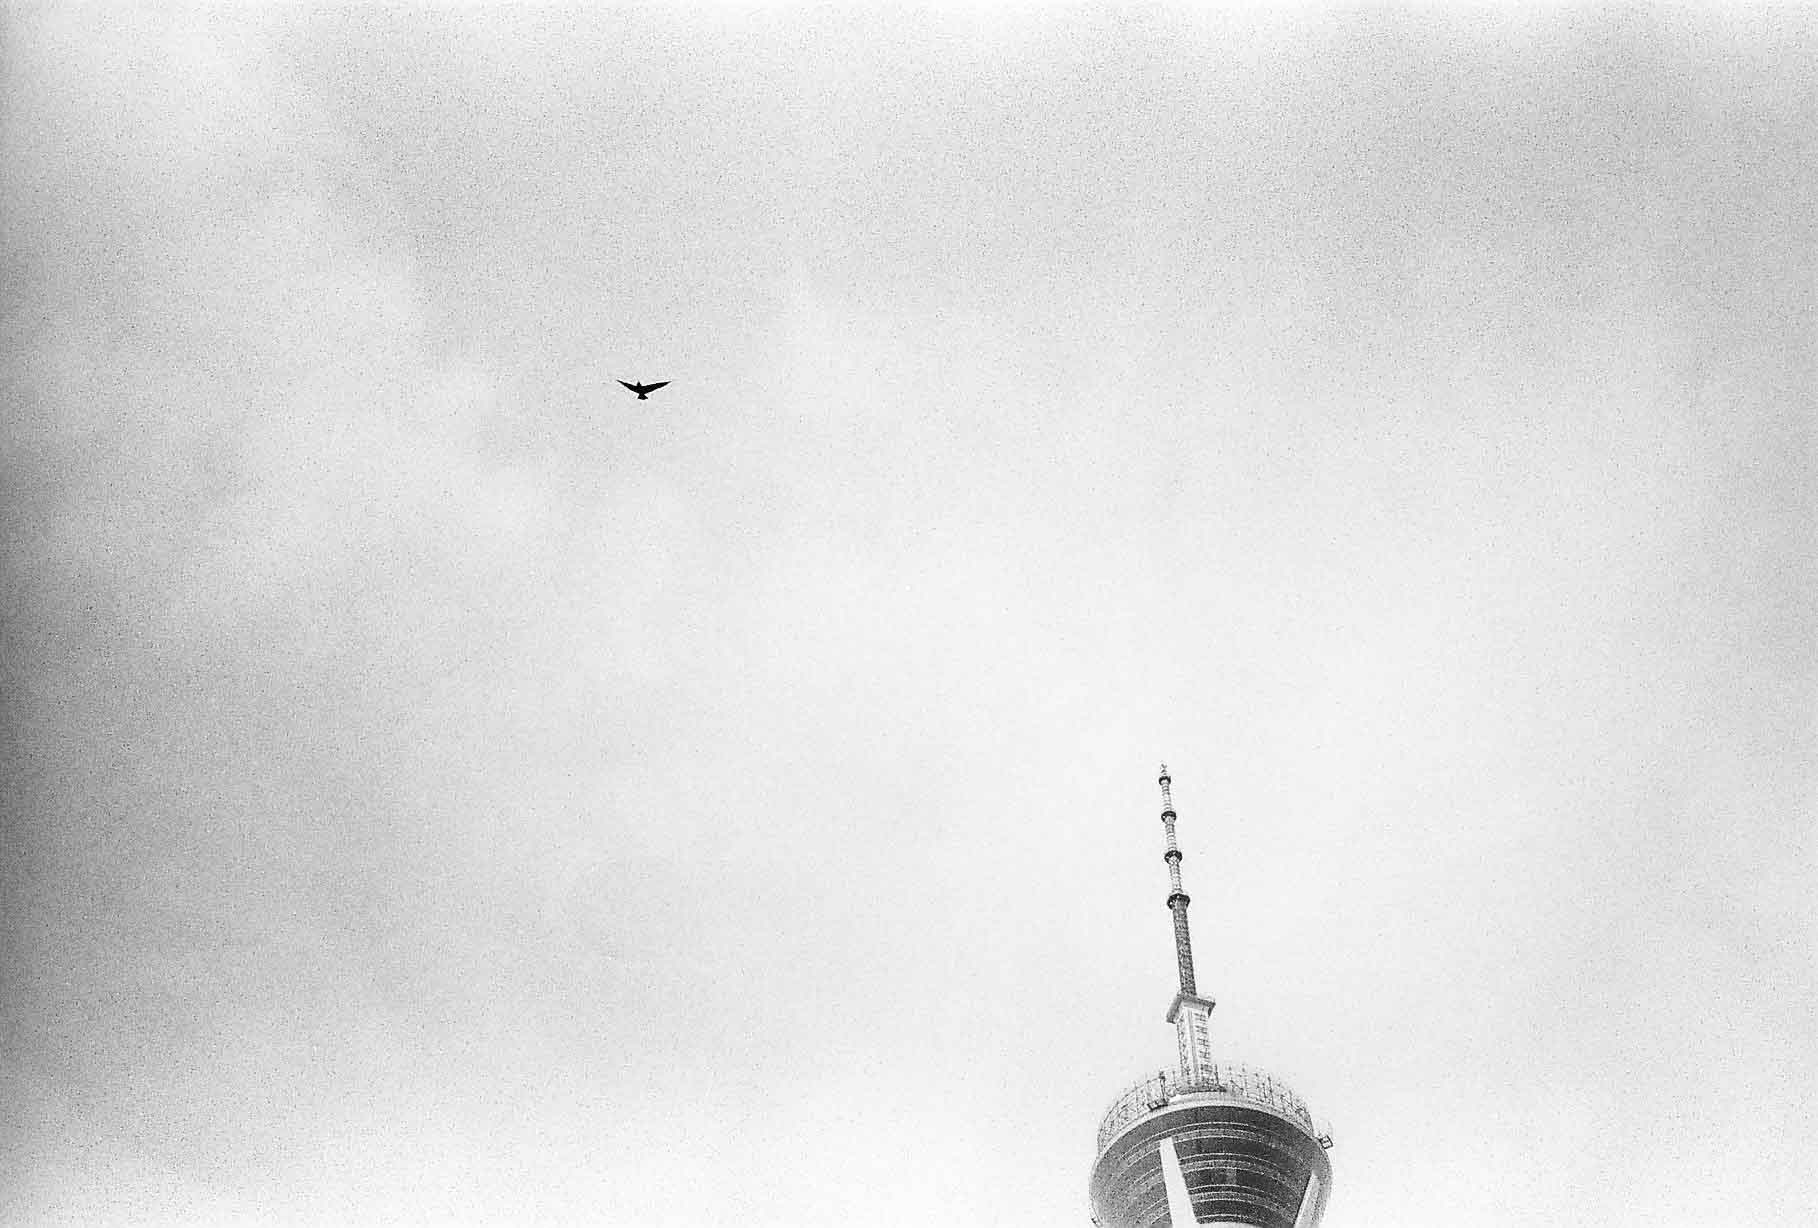 Television Tower and Bird. Chengdu, 2018.